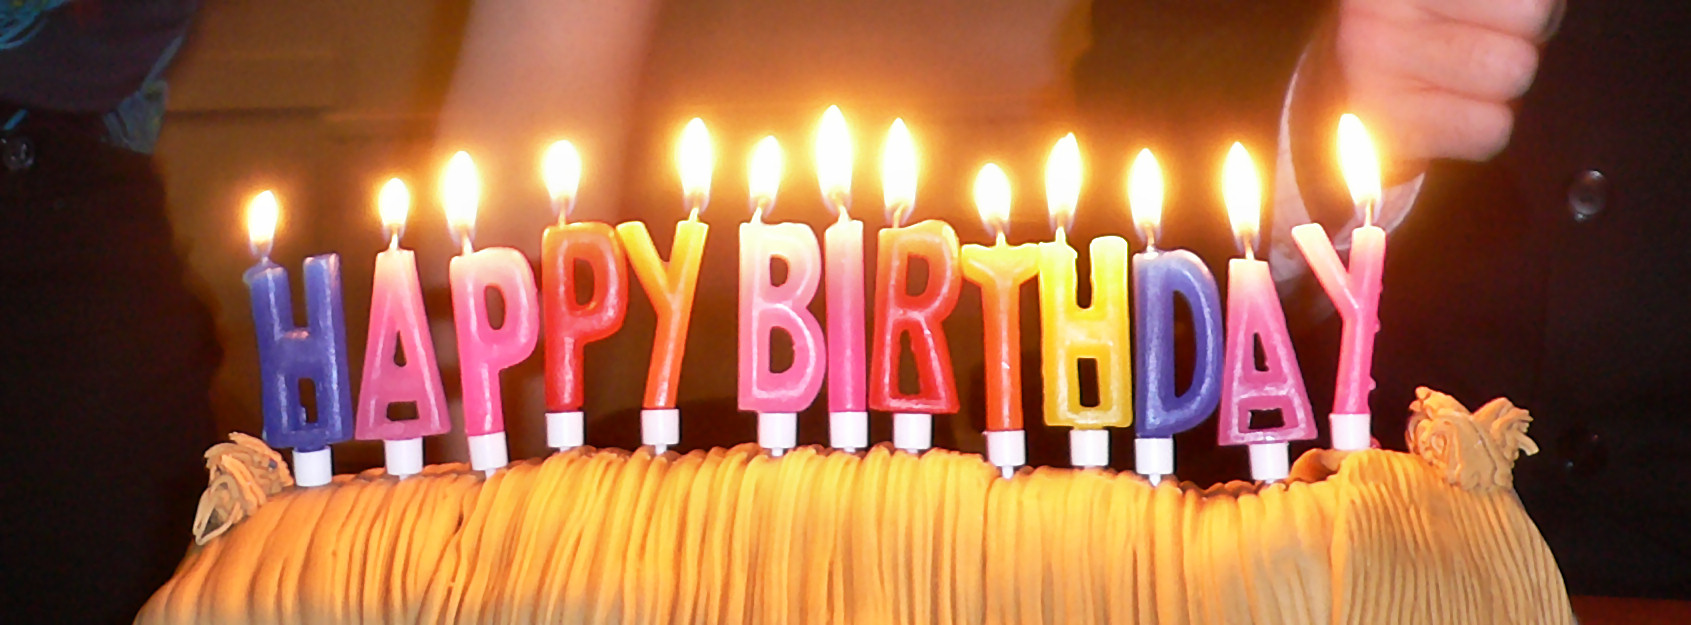 Happy Birthday to You - Wikipedia